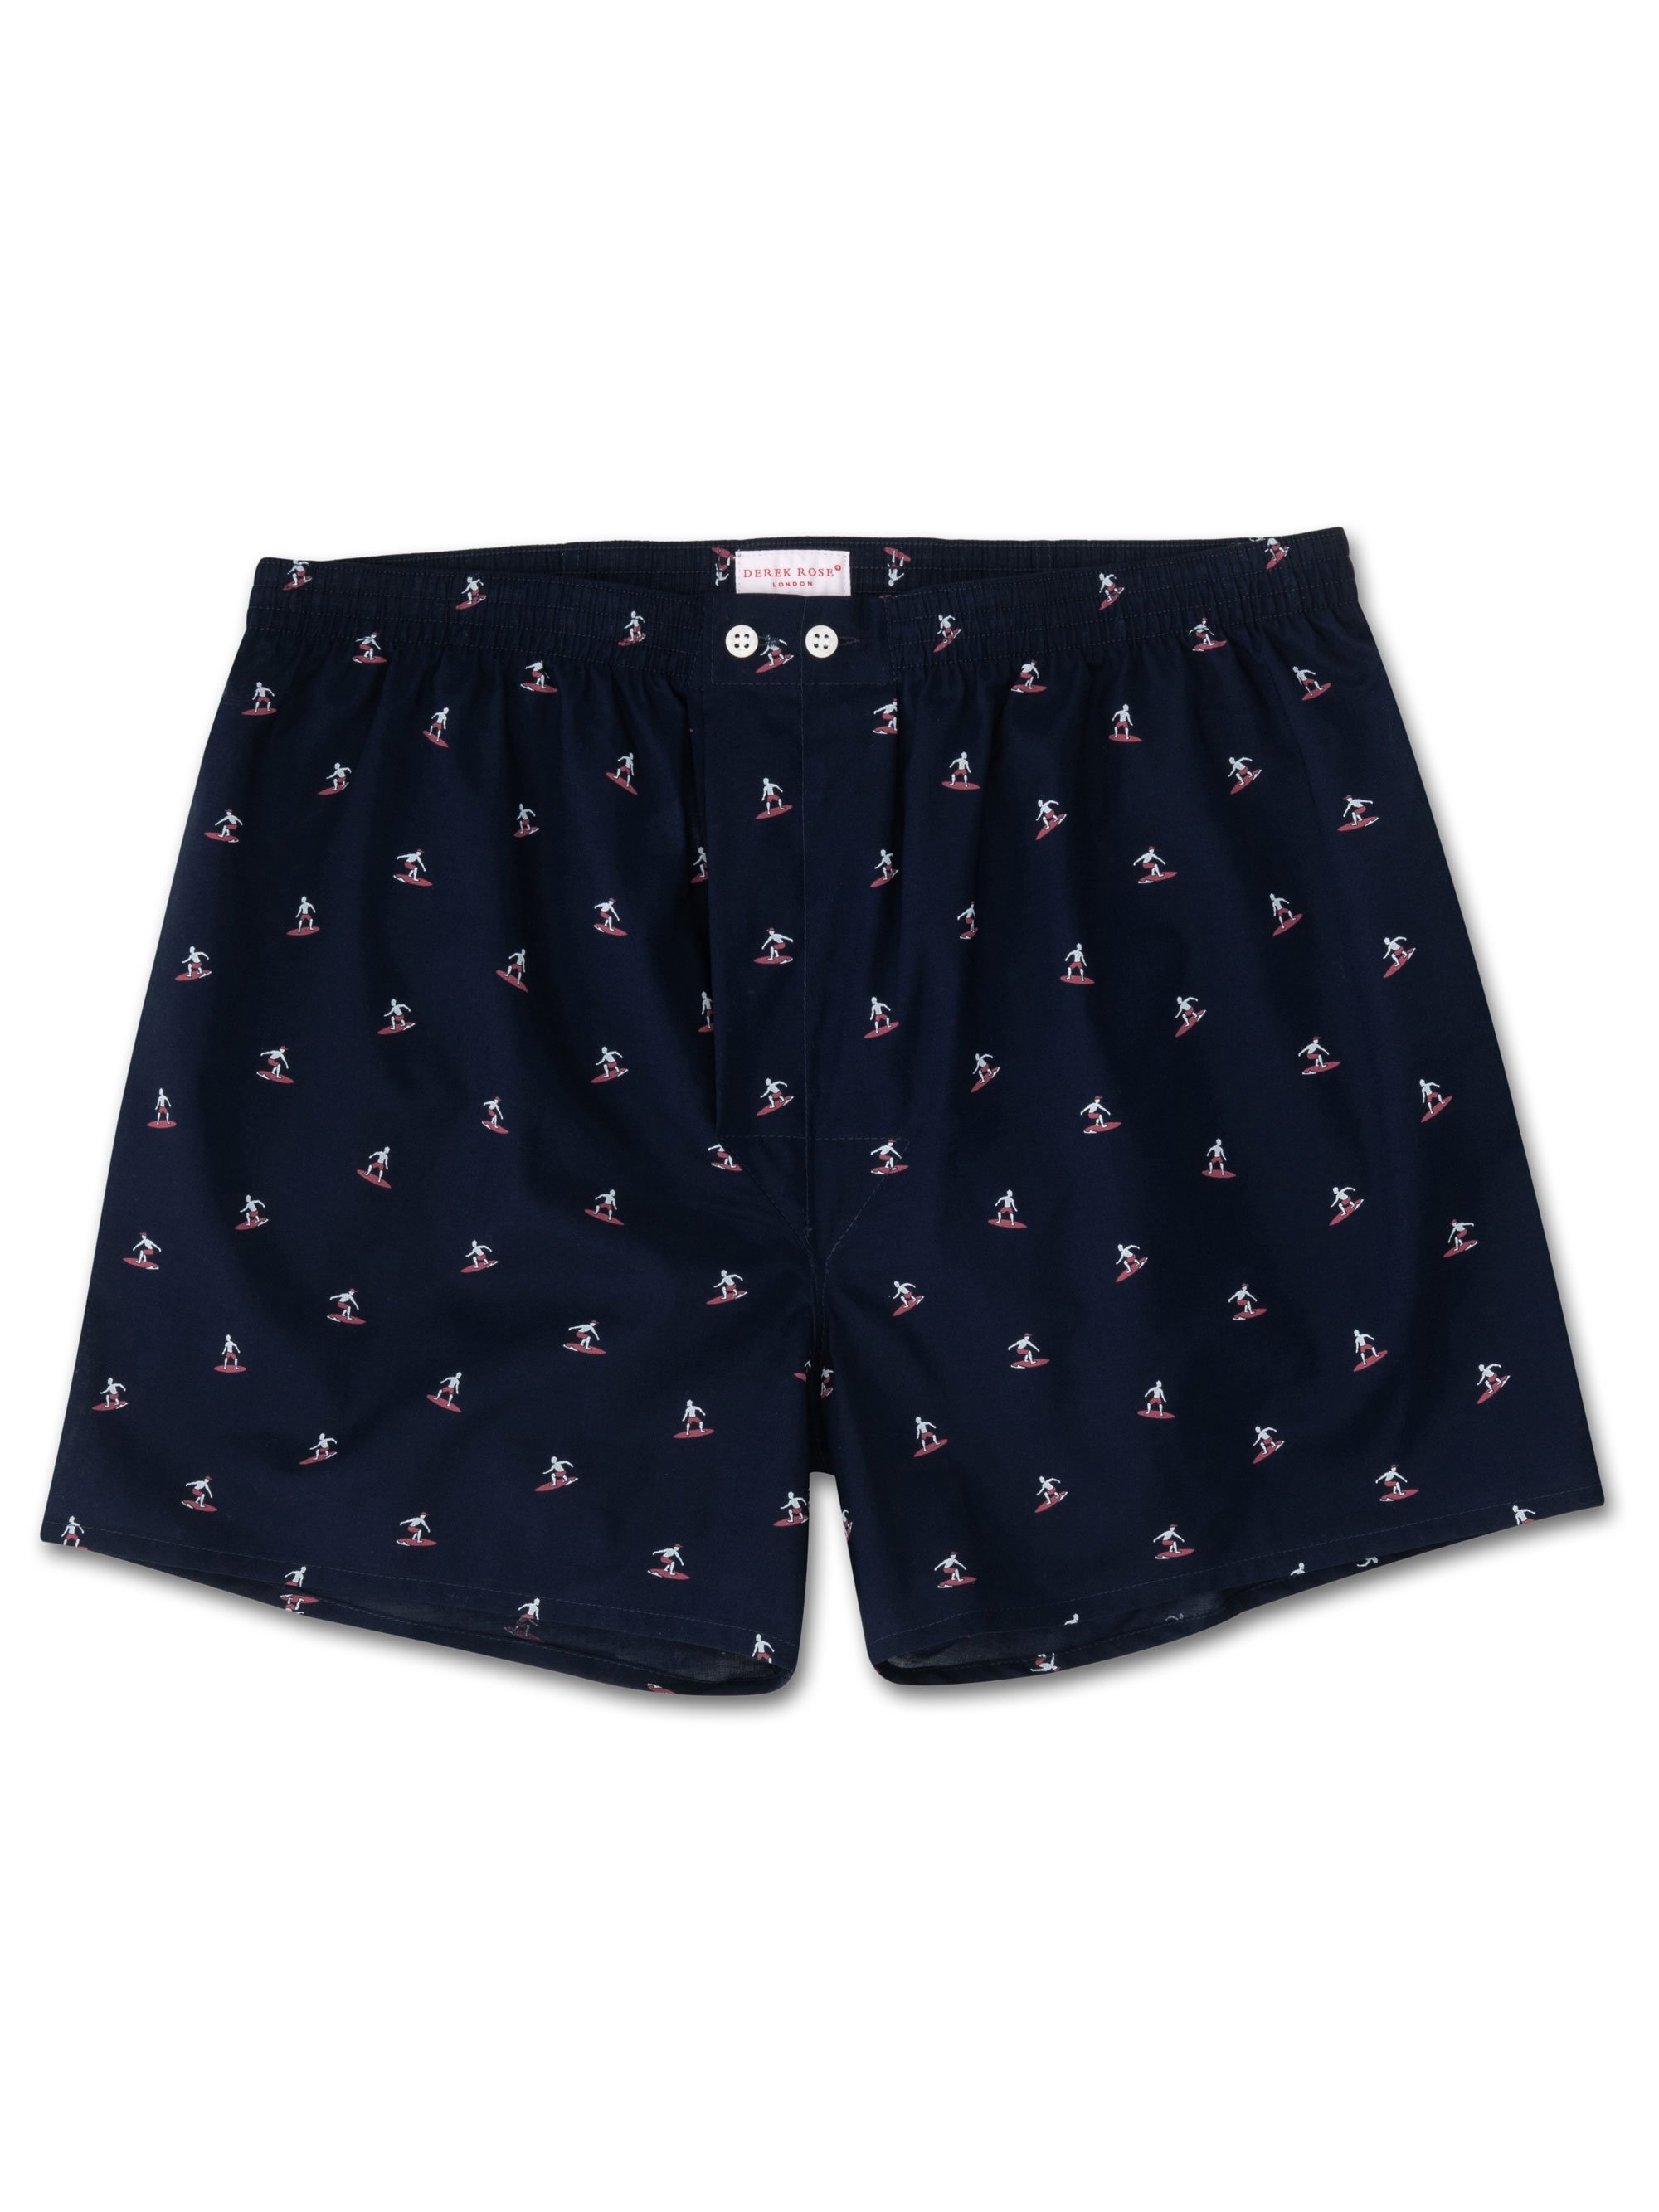 Men's Classic Fit Boxer Shorts Nelson 69 Cotton Batiste Navy